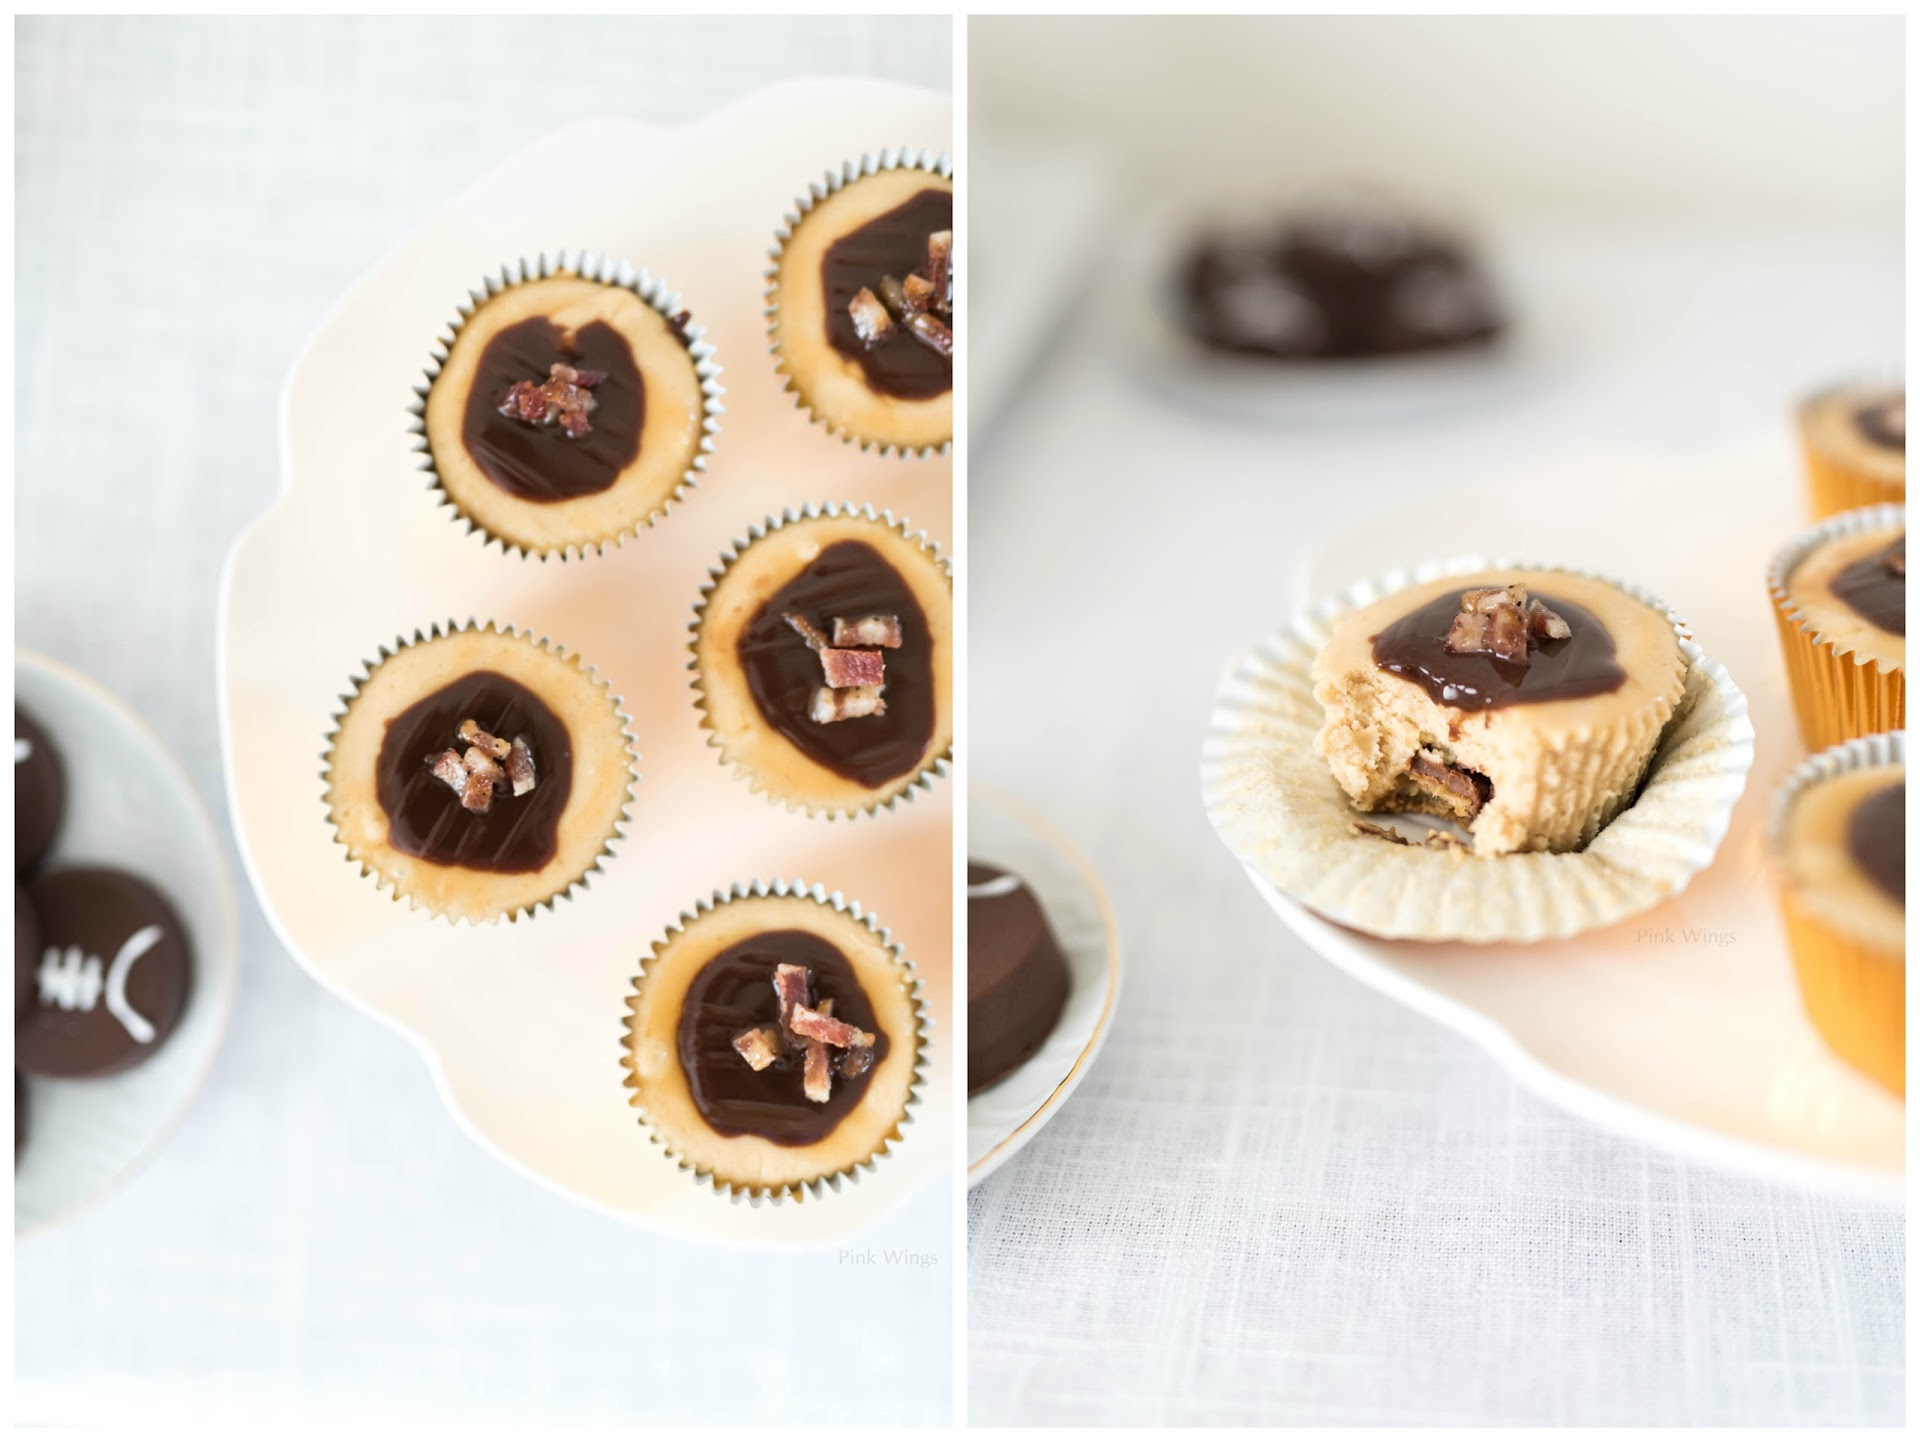 candied bacon, peanut butter mini cheesecakes, man food, tailgating food, football party food ideas, peanut butter dessert, easy peanut butter cheesecake, baked peanut butter cheesecake